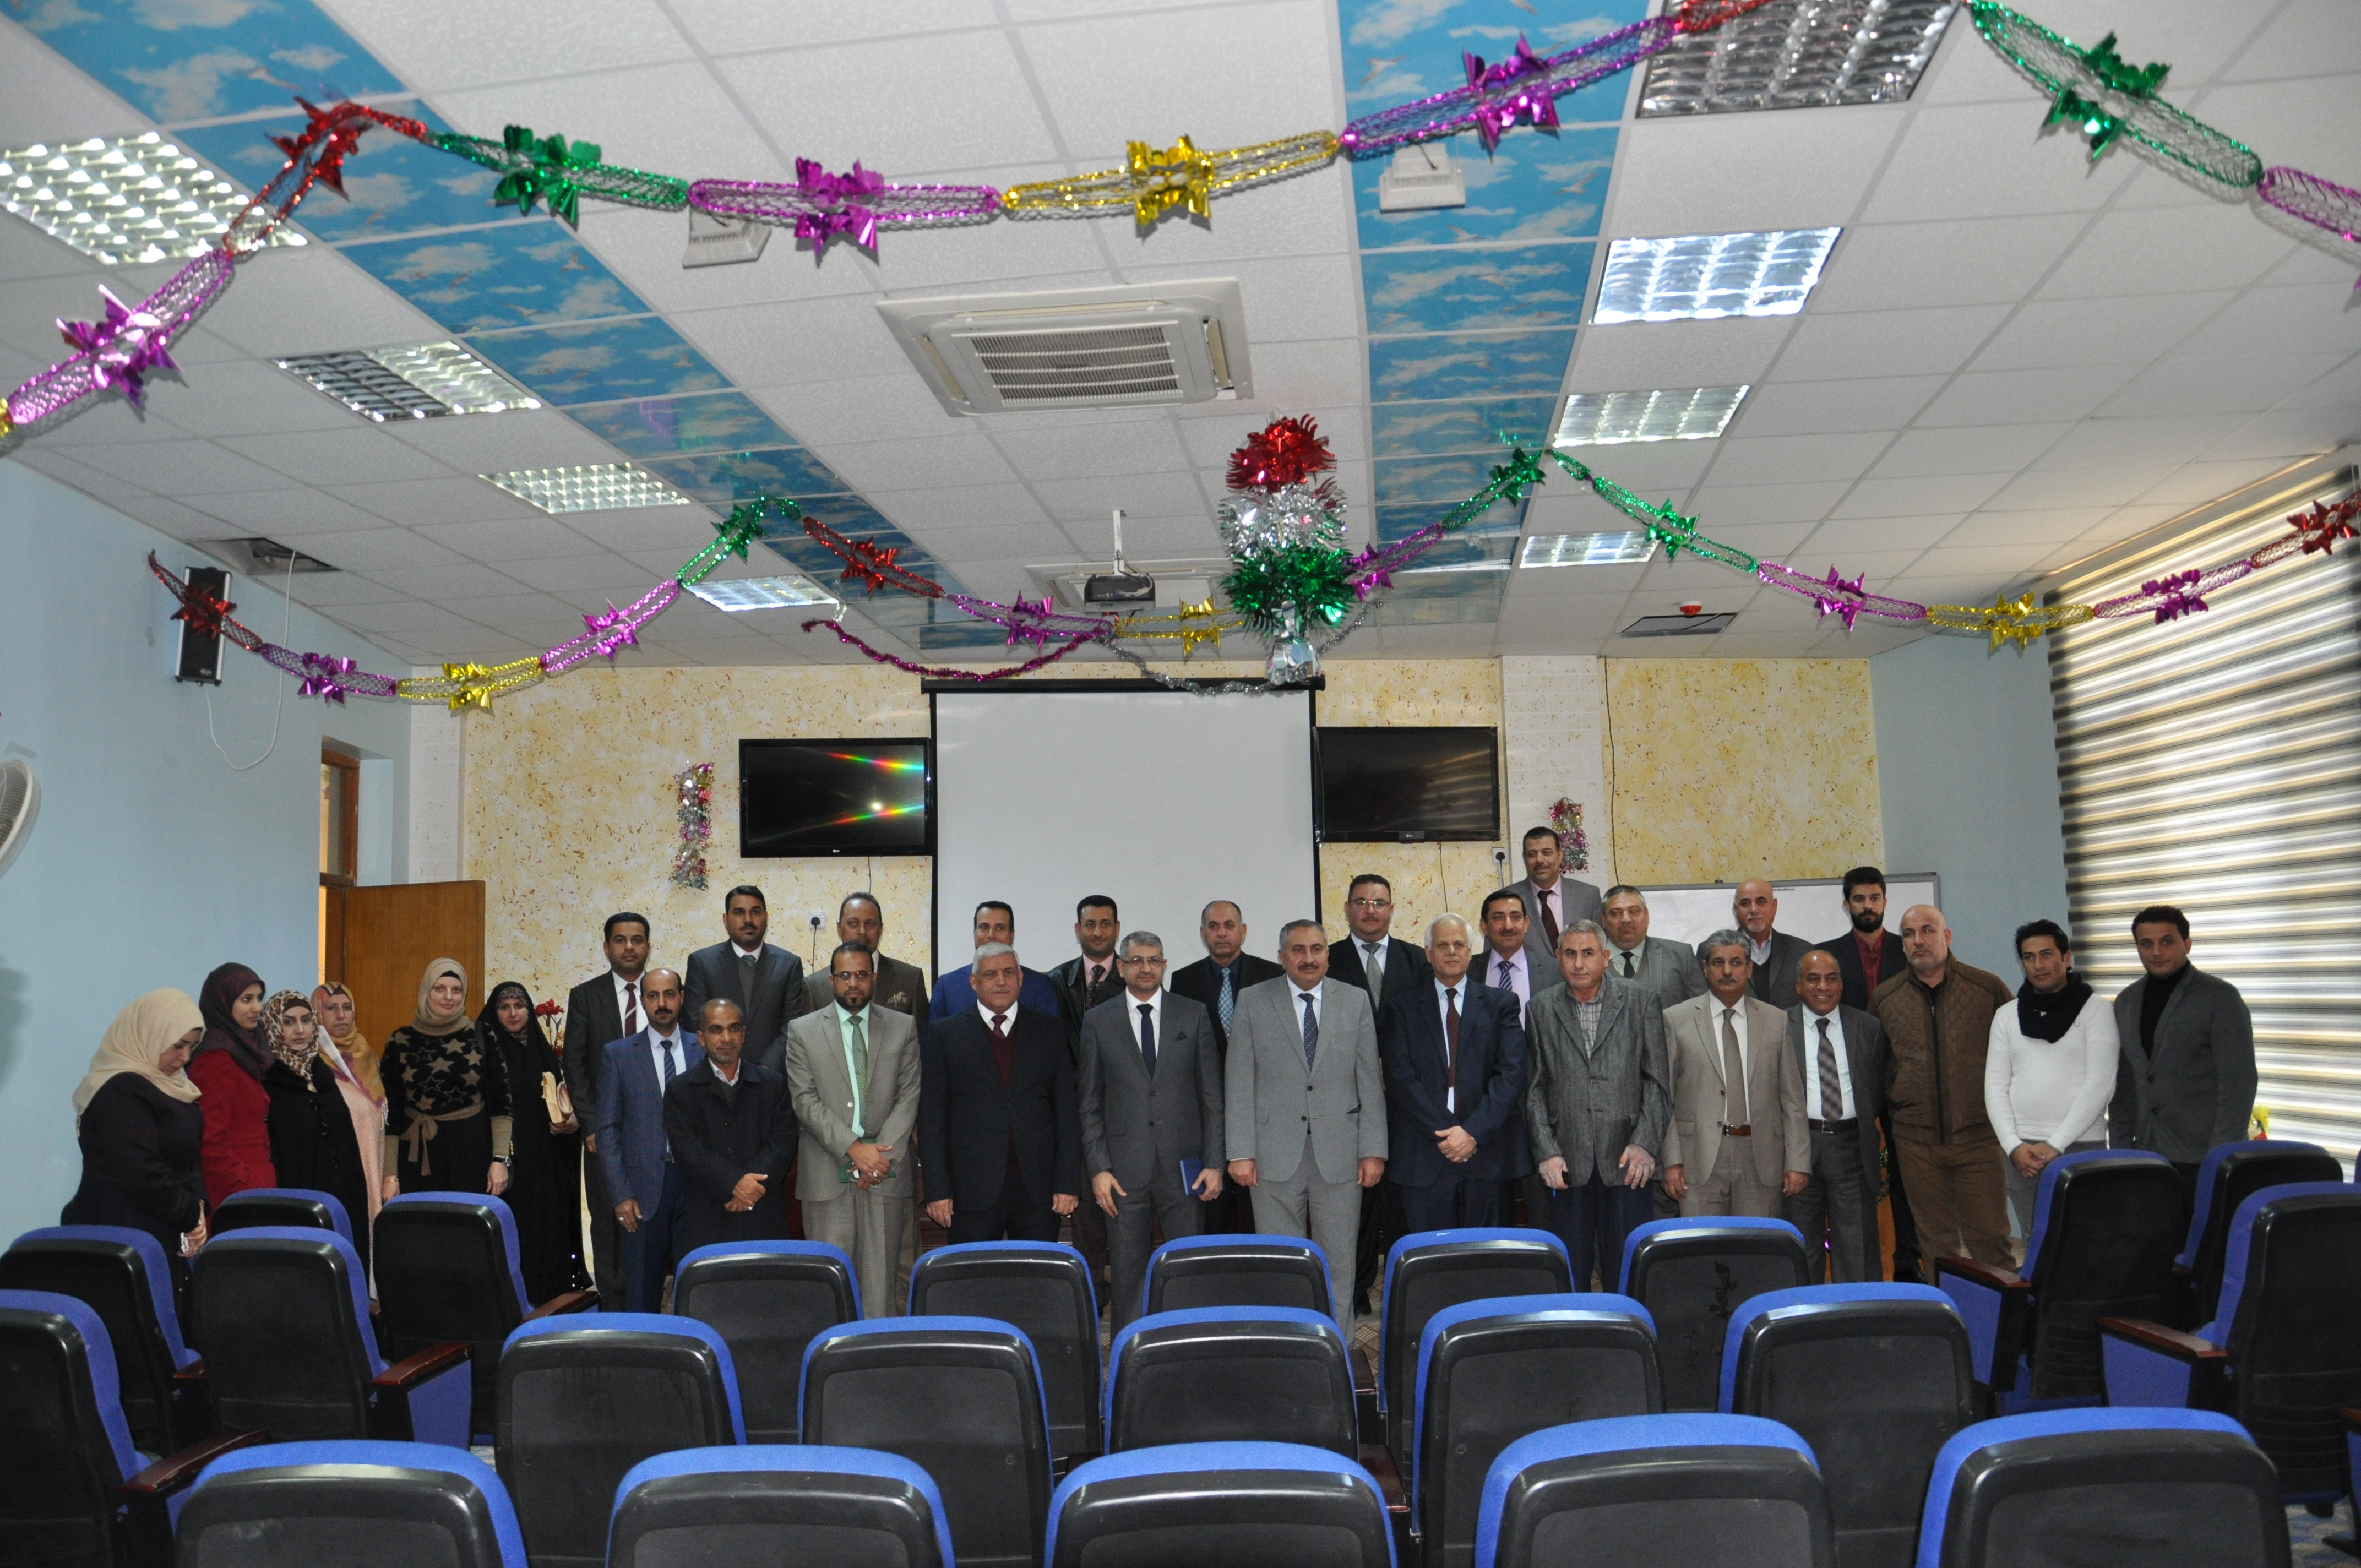 Meeting of the President of the University with the teachers